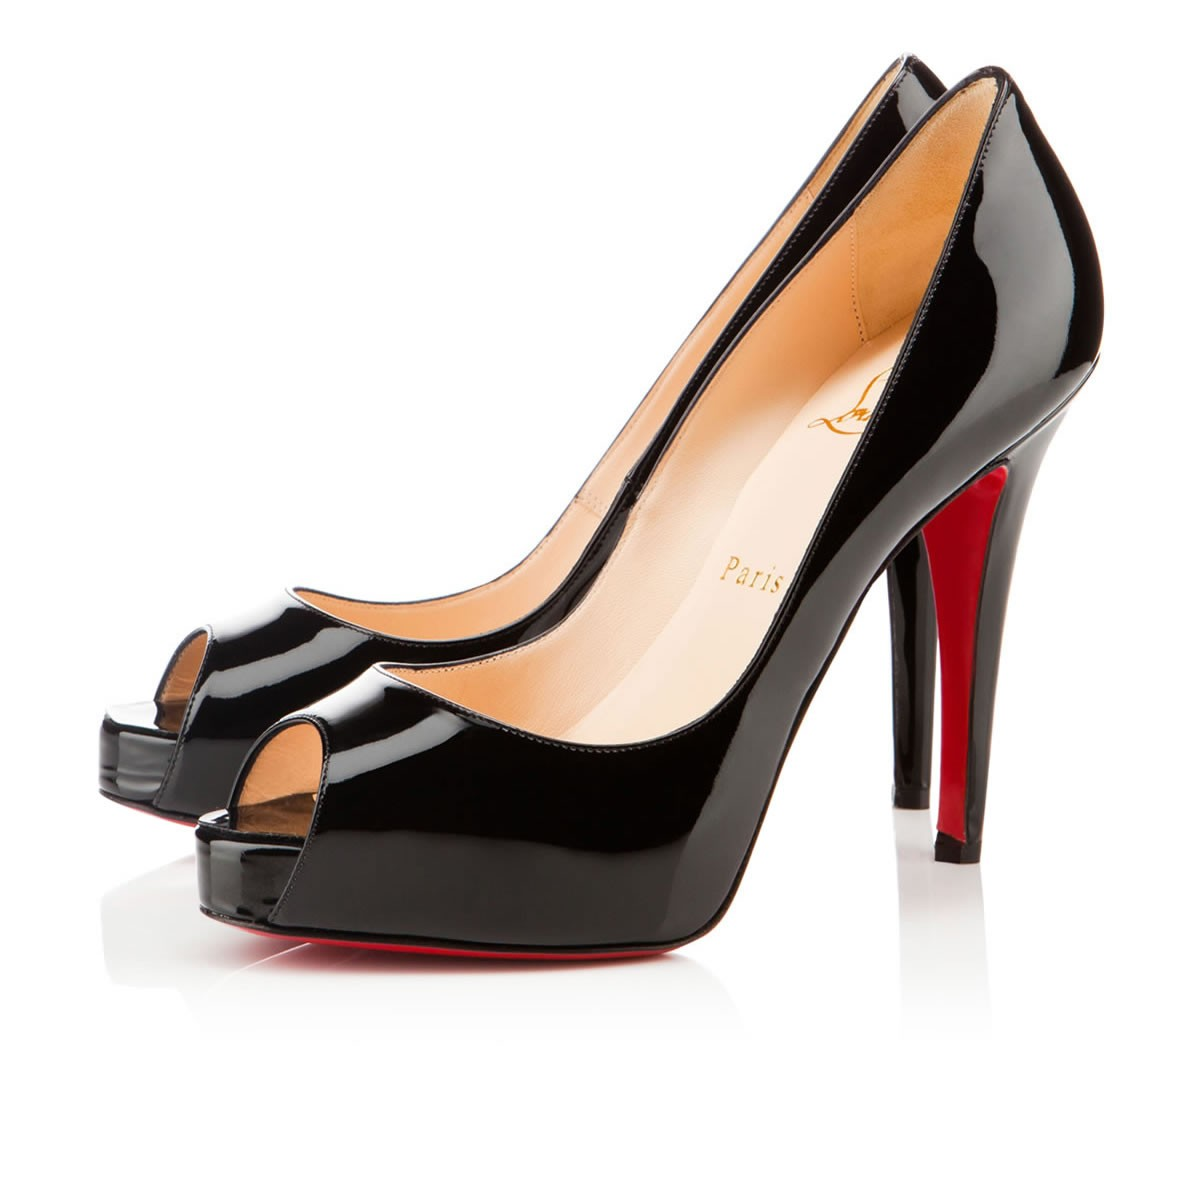 christianlouboutin-veryprive